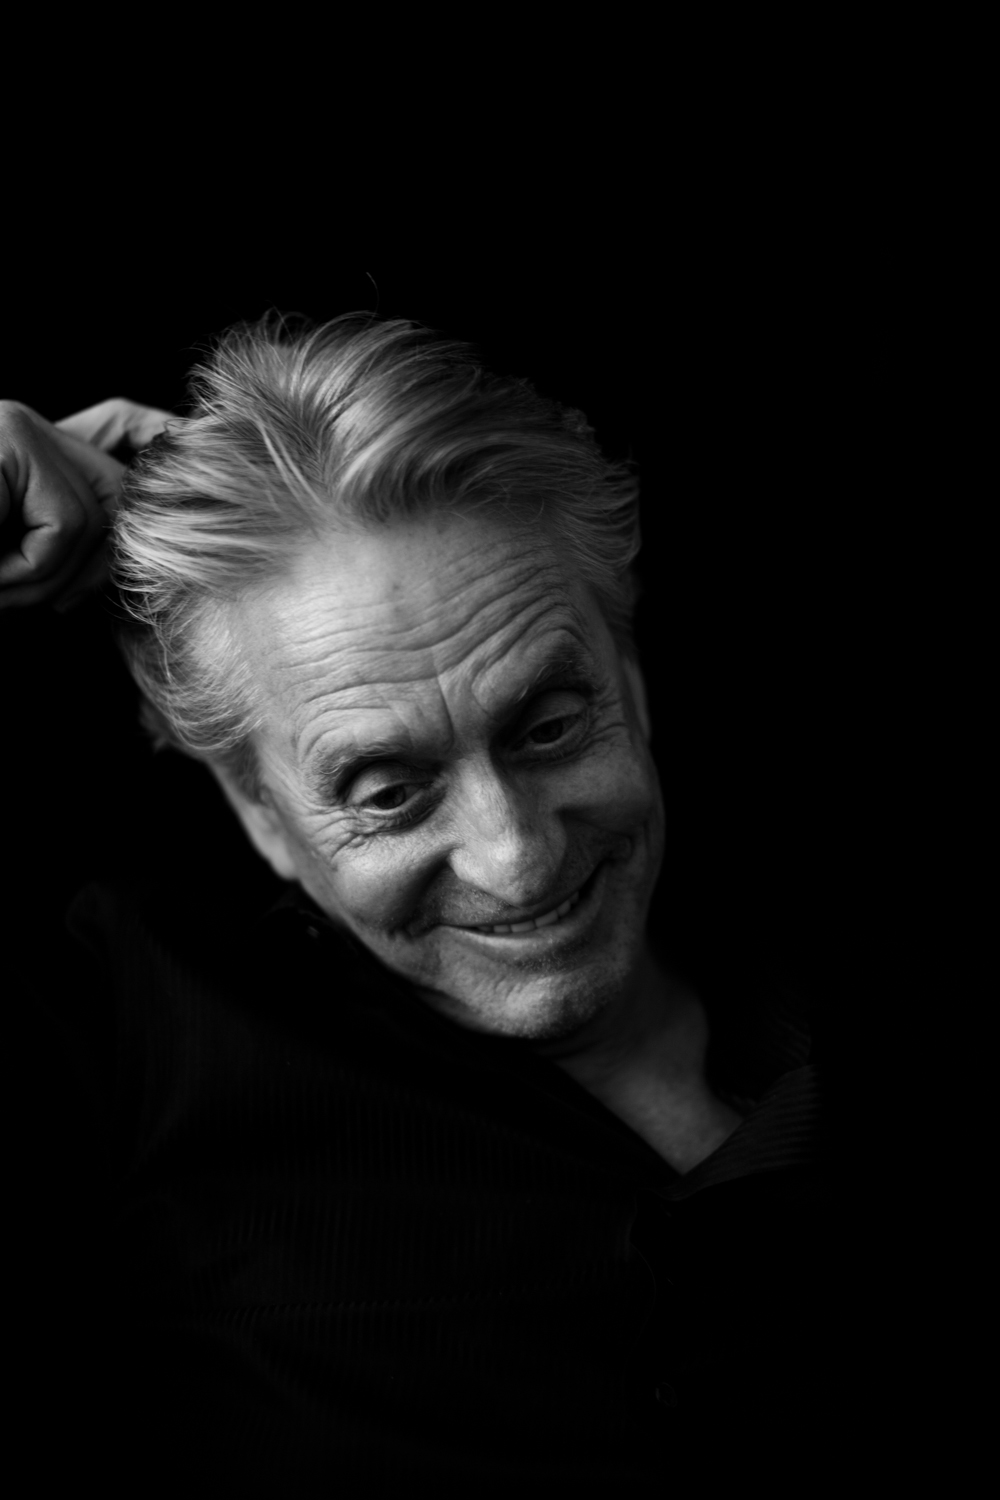 johnmidgley-michaeldouglas-11.jpg